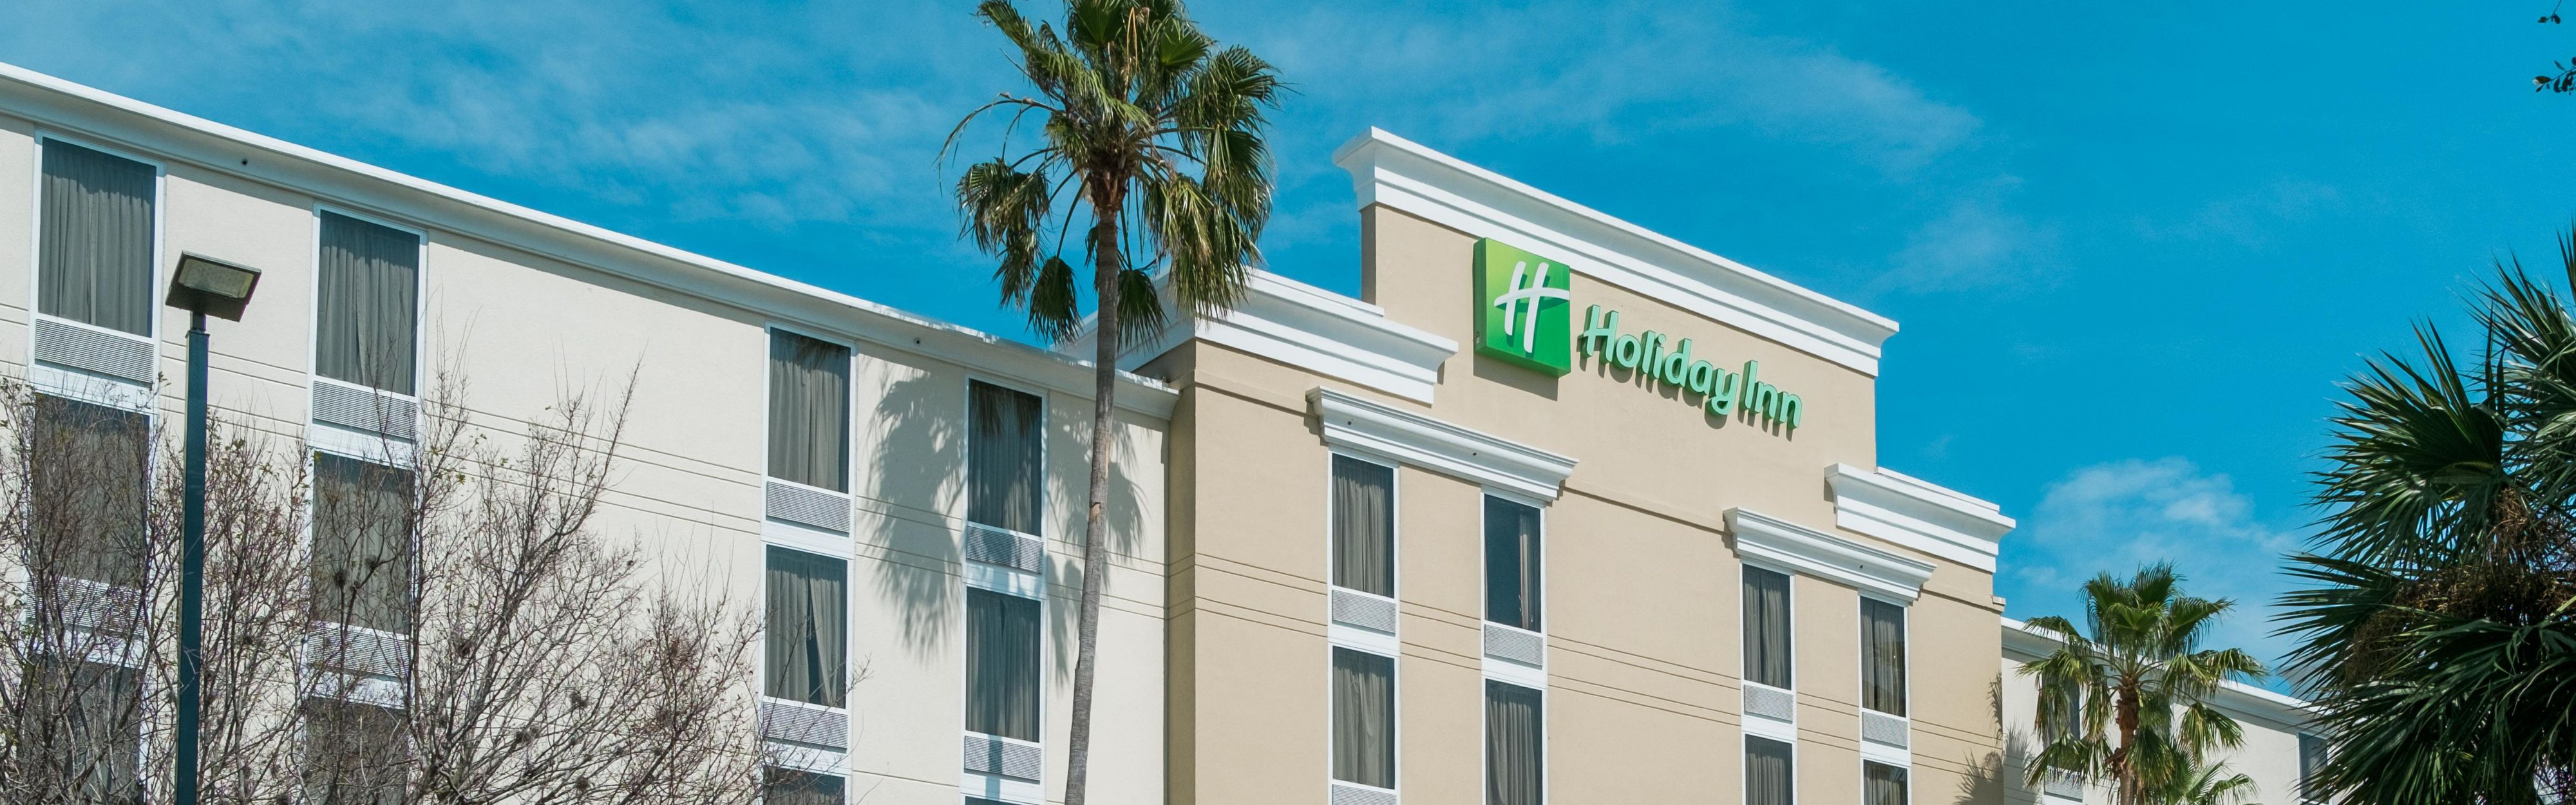 Holiday Inn Melbourne-Viera Conference Ctr image 0